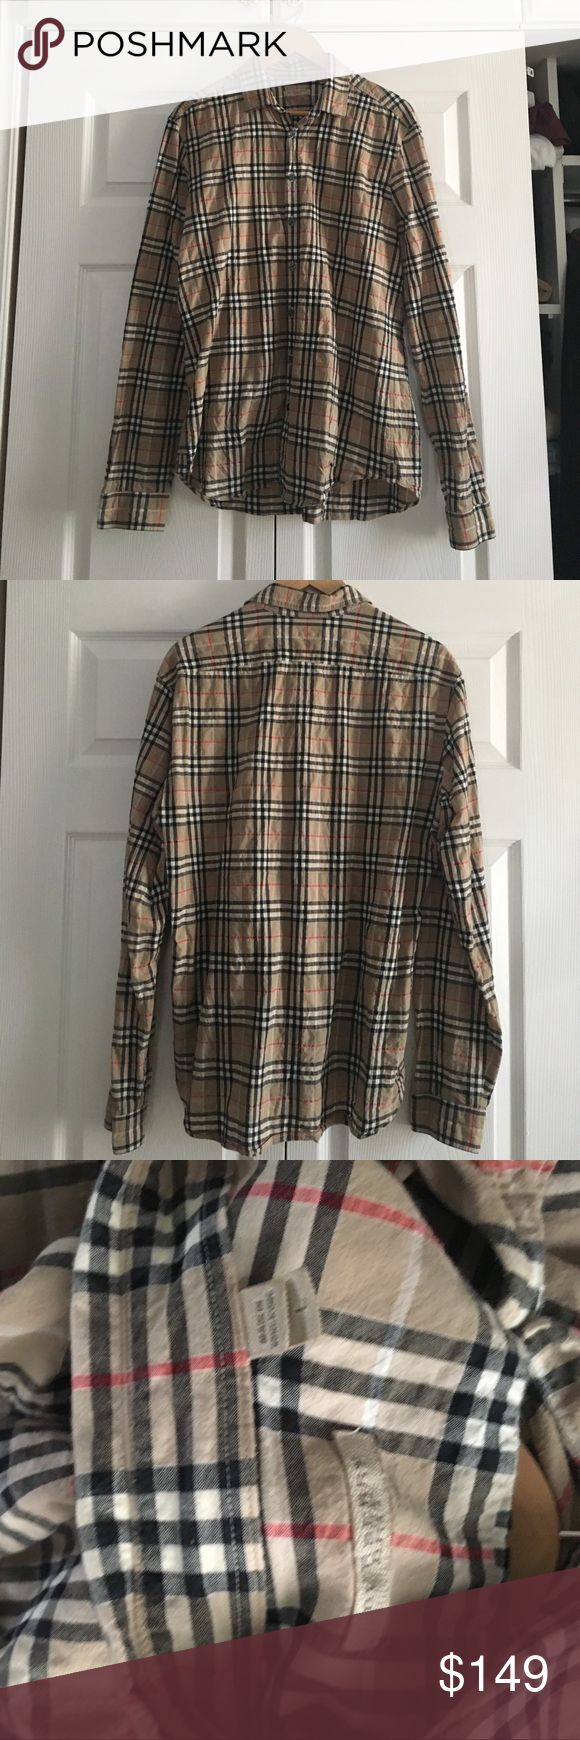 Burberry Brit Long sleeve shirt for men Burberry Brit long sleeve shirt for men. Pre owned may show some signs of wear. No stains, damages or tears. Camel color check shirt. Size Large.  authentic. No trades please. Need ironing. The color not vibrant. Burberry Shirts Casual Button Down Shirts